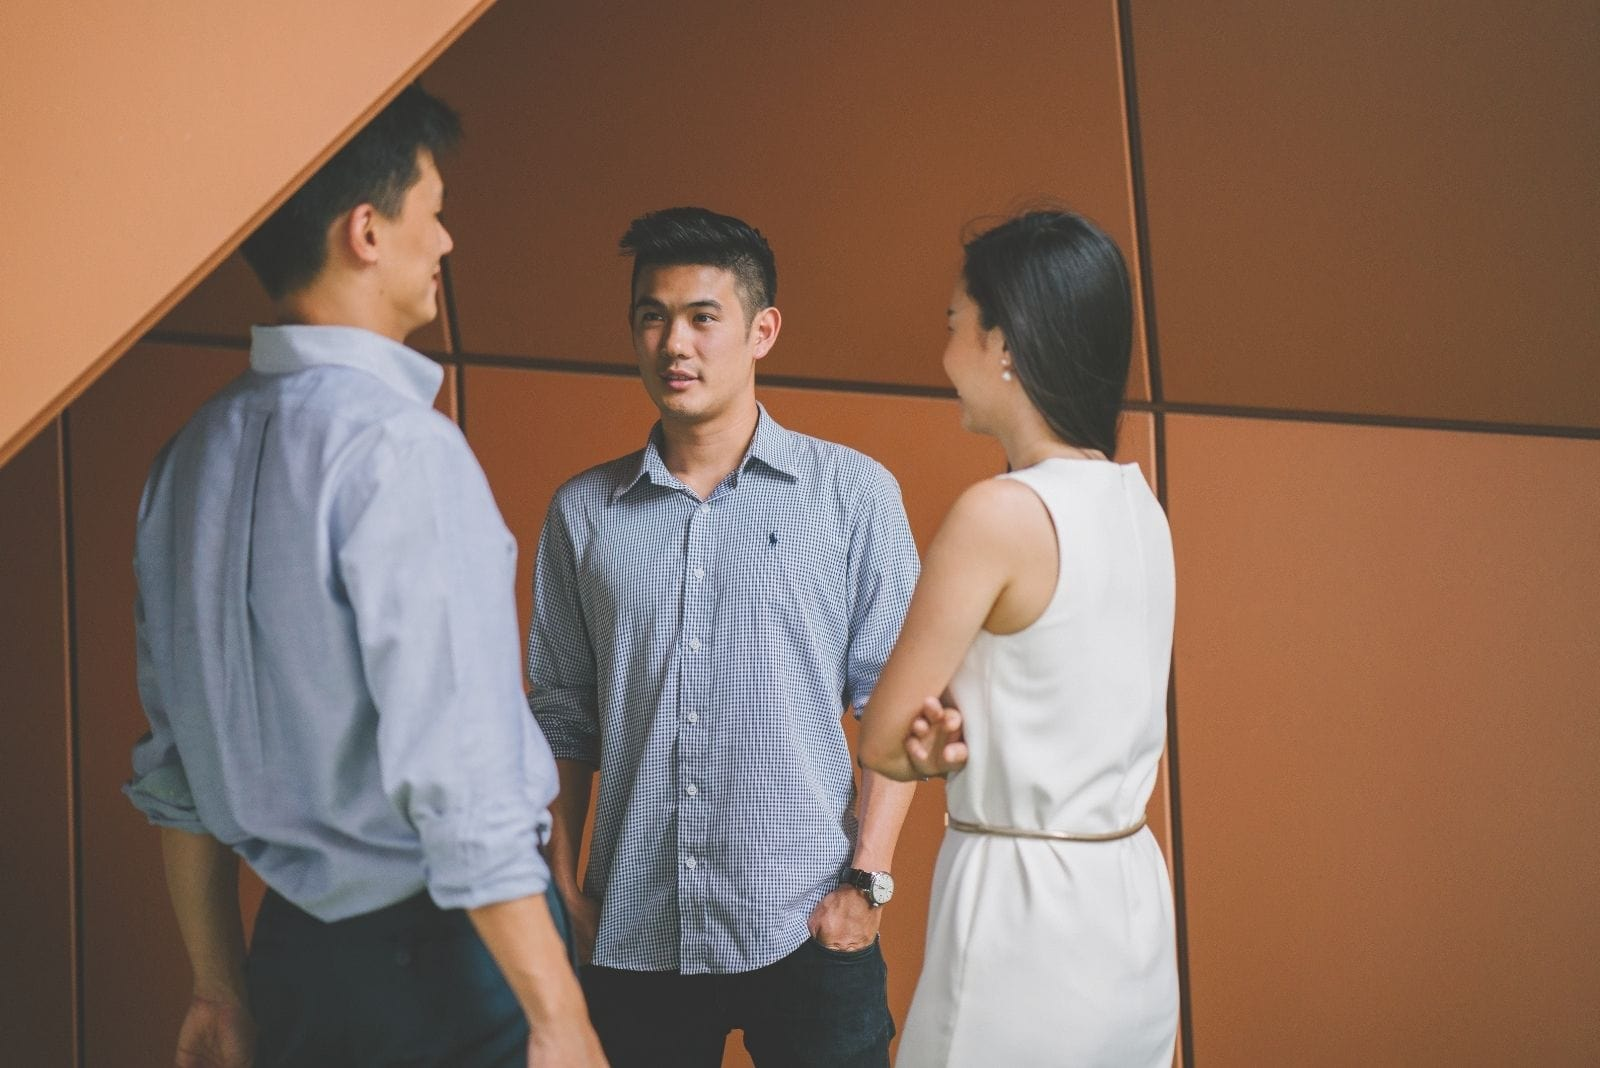 asian business people talking in the corner of the office standing